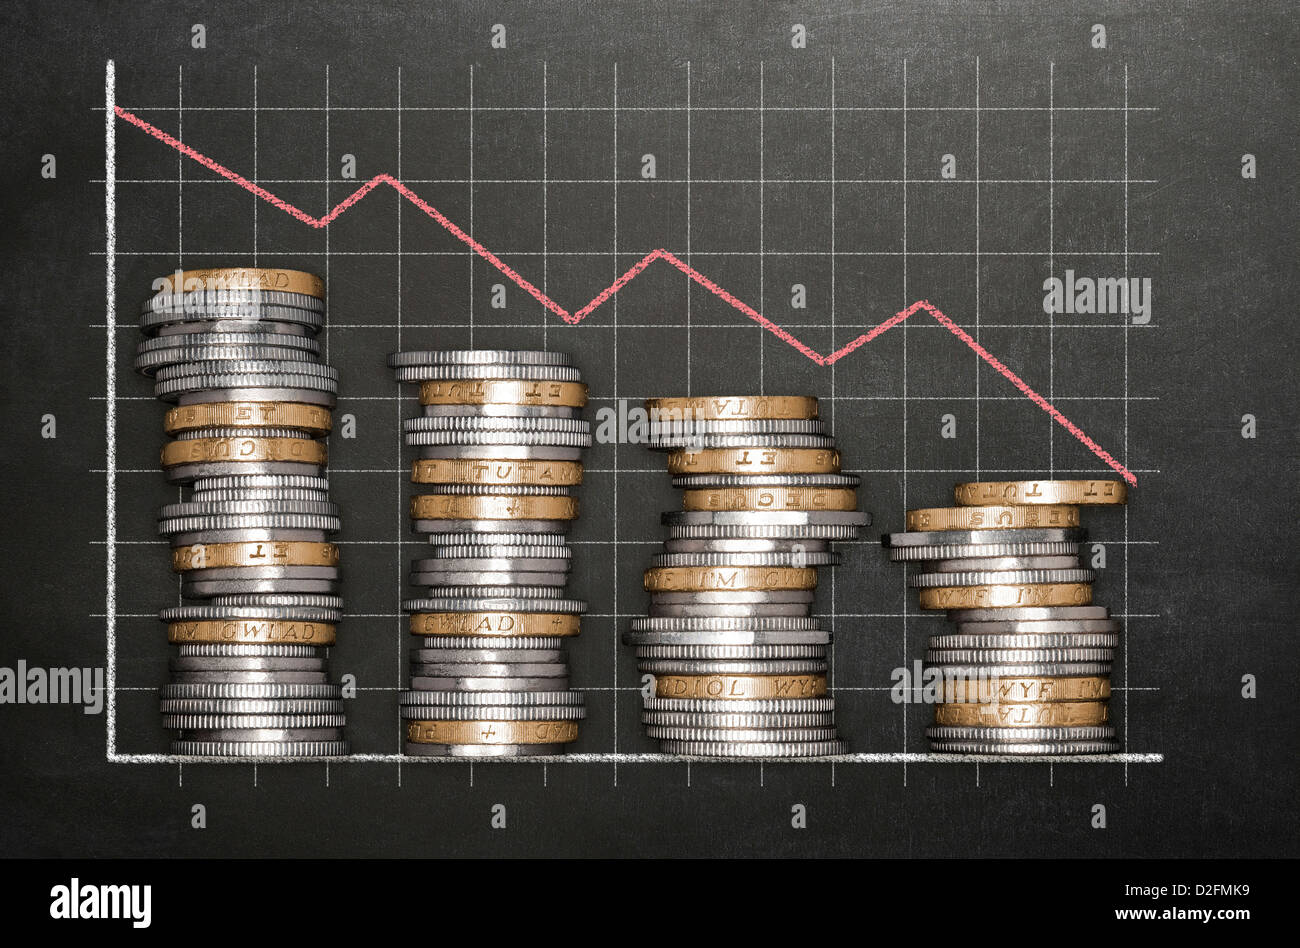 Concept finance business financial loss concept - Stacks of coins on a blackboard background forming a descending - Stock Image